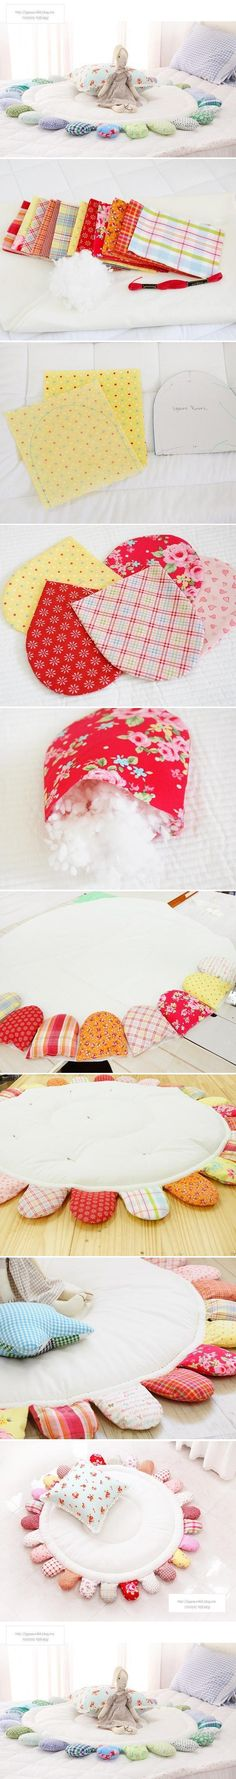 DIY Children Rug Patchwork DIY Children Rug Patchwork. So cool and so easy to make! Bianca@itti